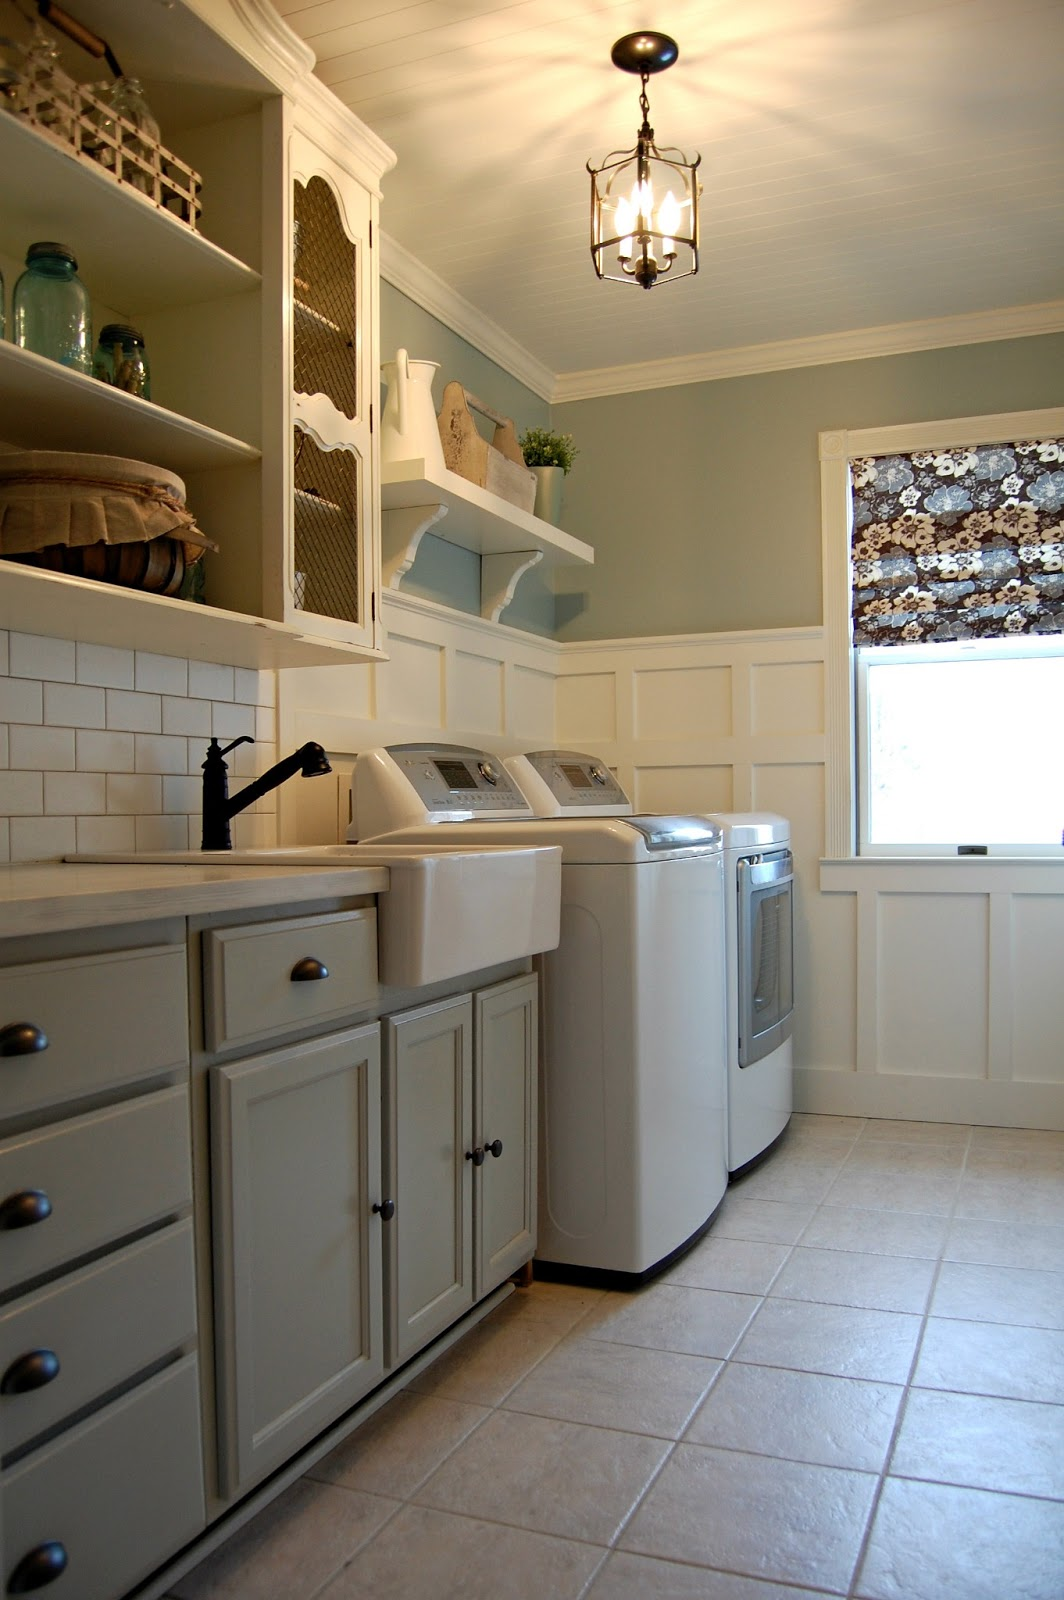 roly poly farm laundry room reveal. Black Bedroom Furniture Sets. Home Design Ideas